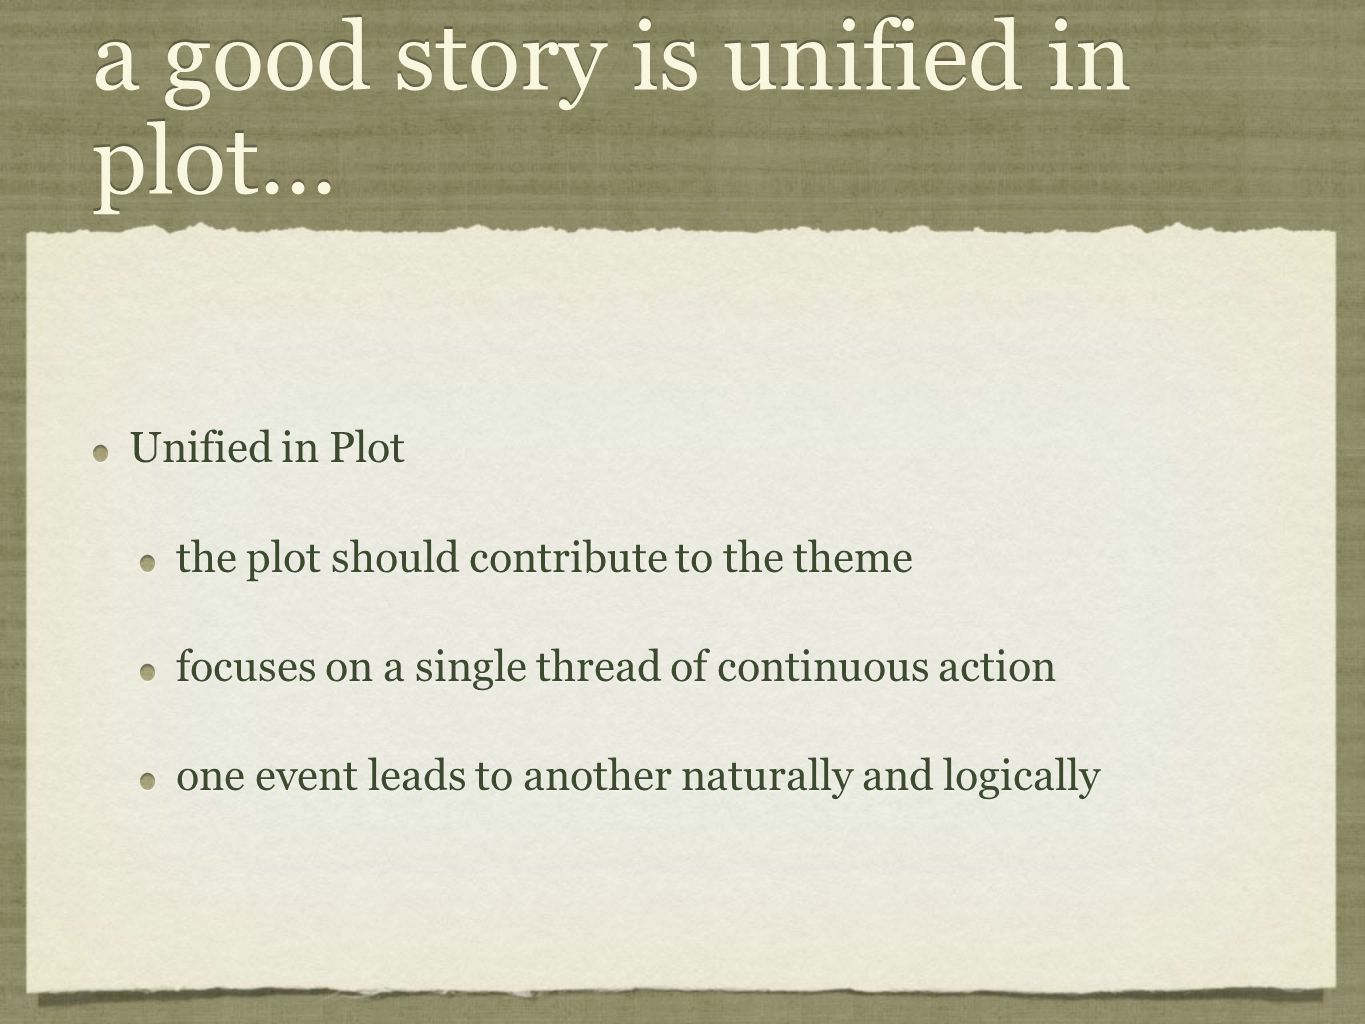 a good story is unified in plot...